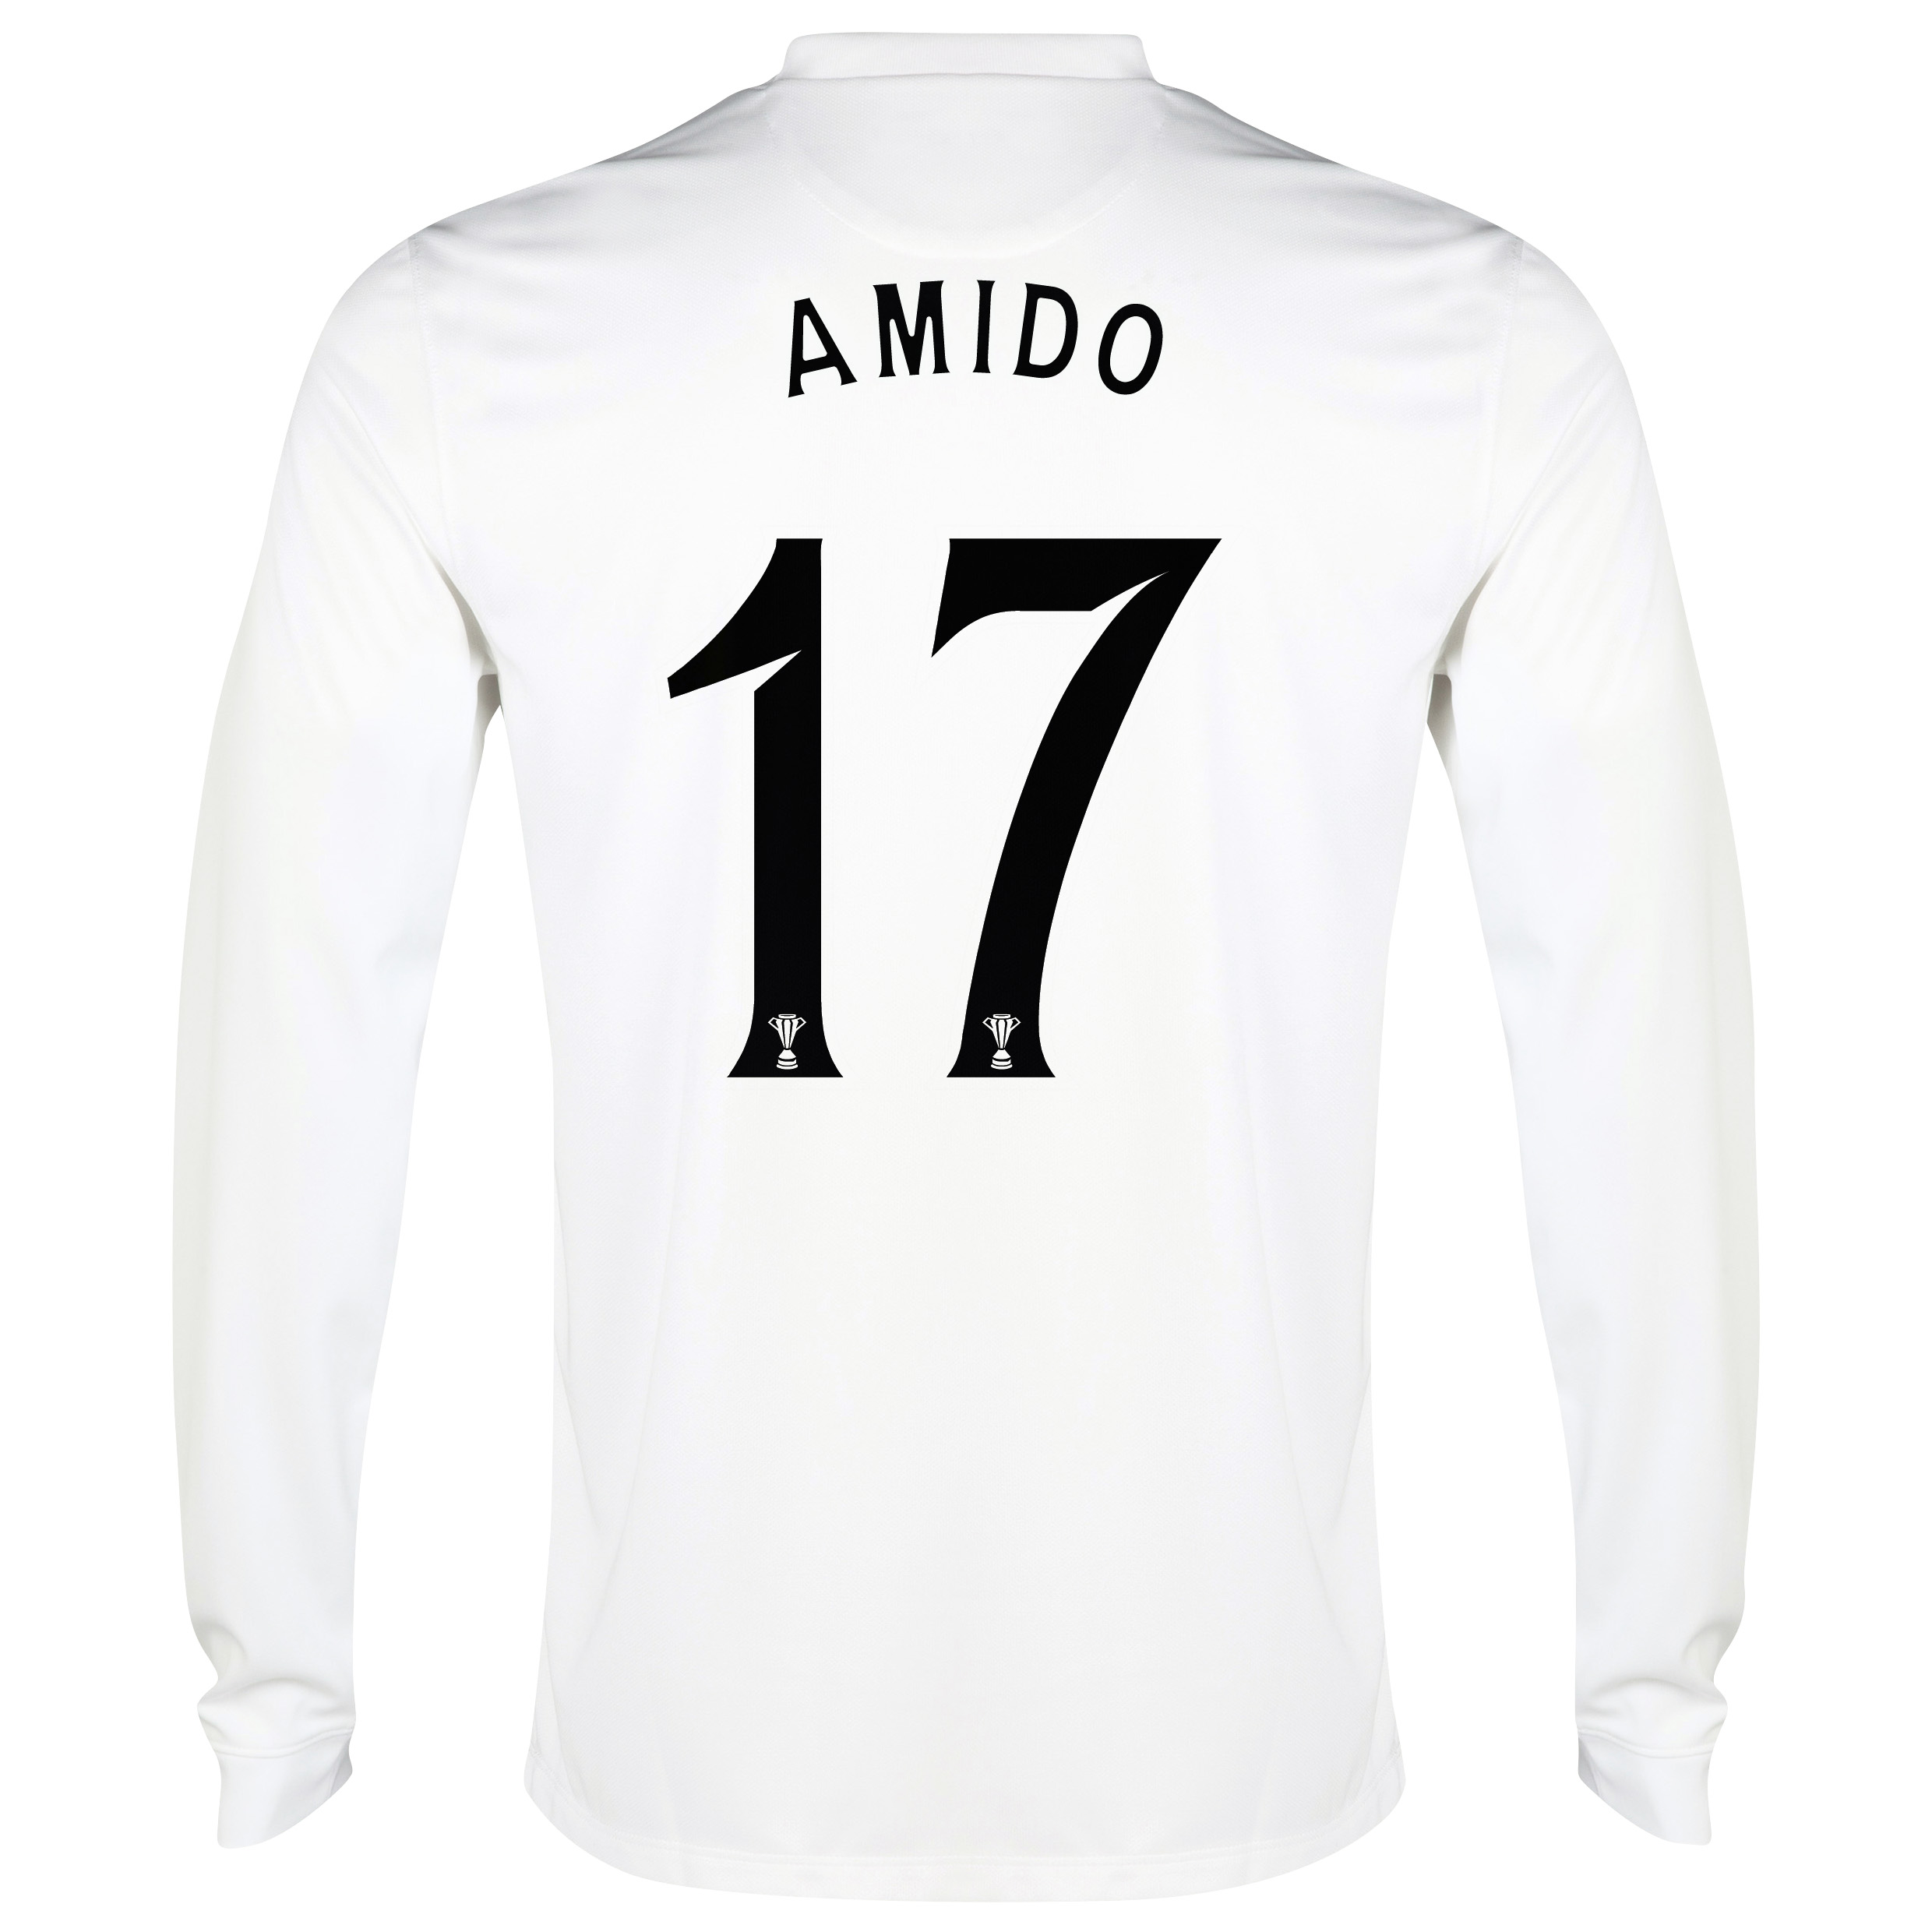 Celtic 3rd Shirt 2014/15 - Long Sleeved - Unsponsored White with Amido 17 printing